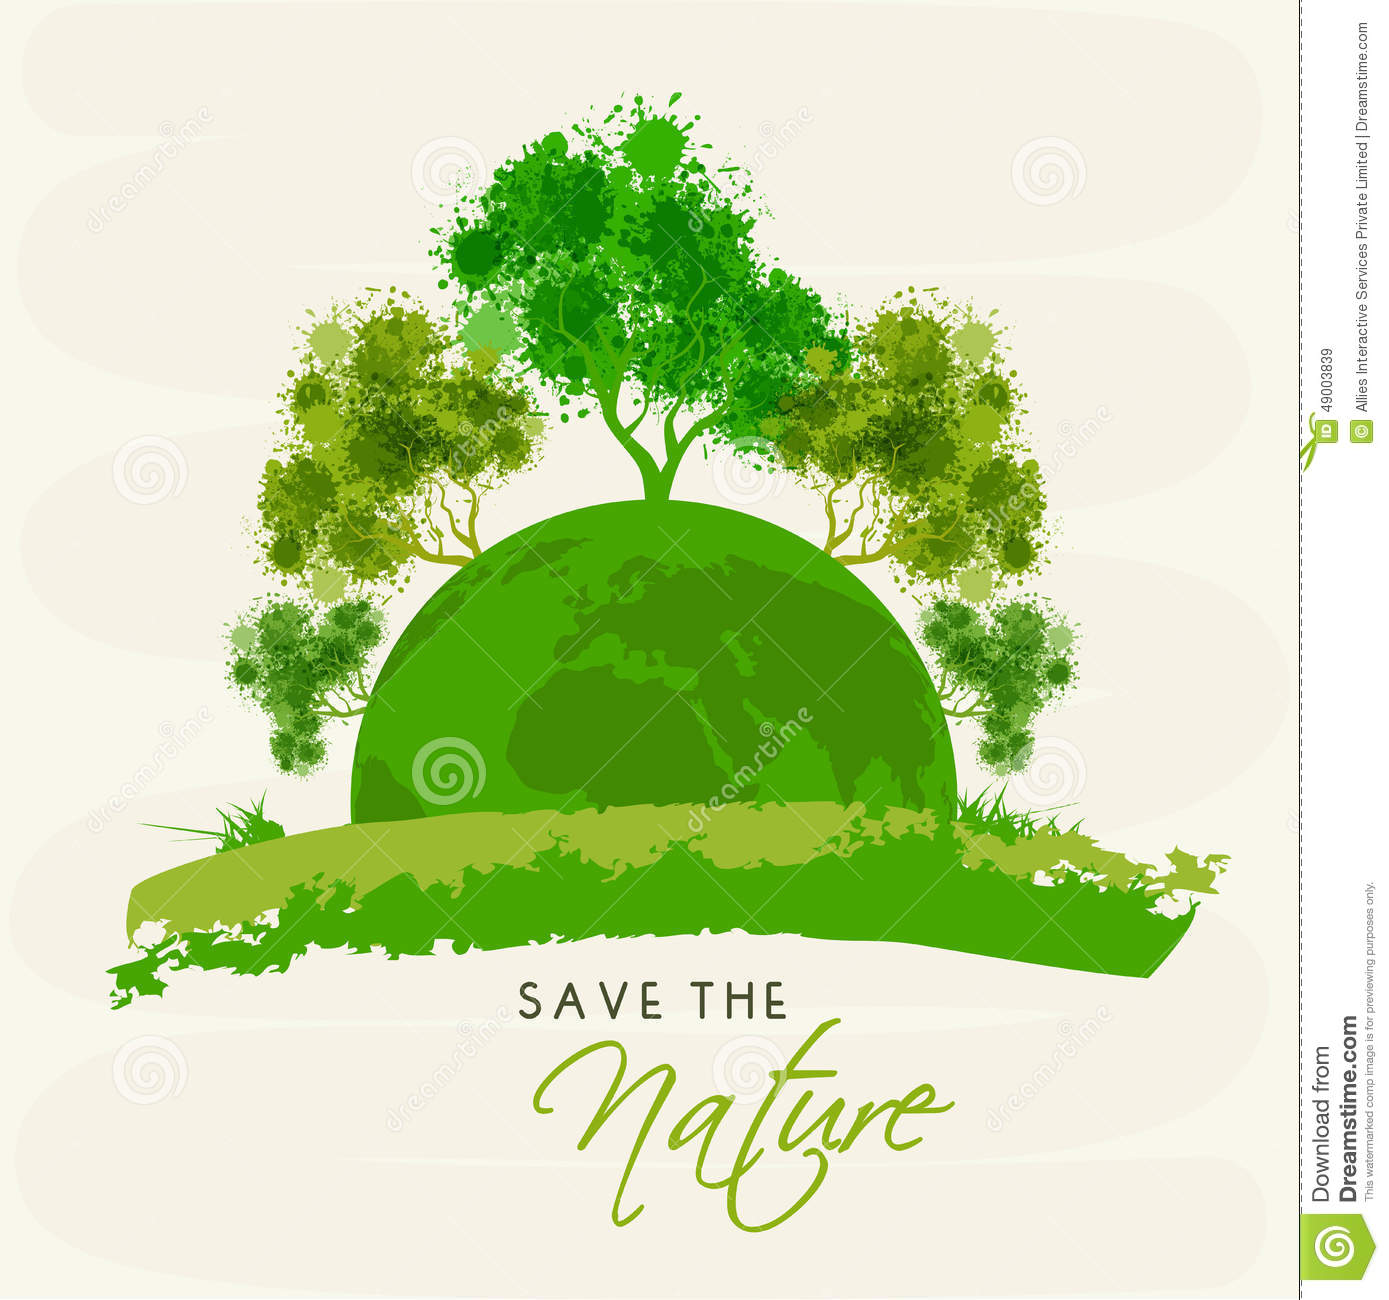 55 Ways to Save the Environment and Make a Difference